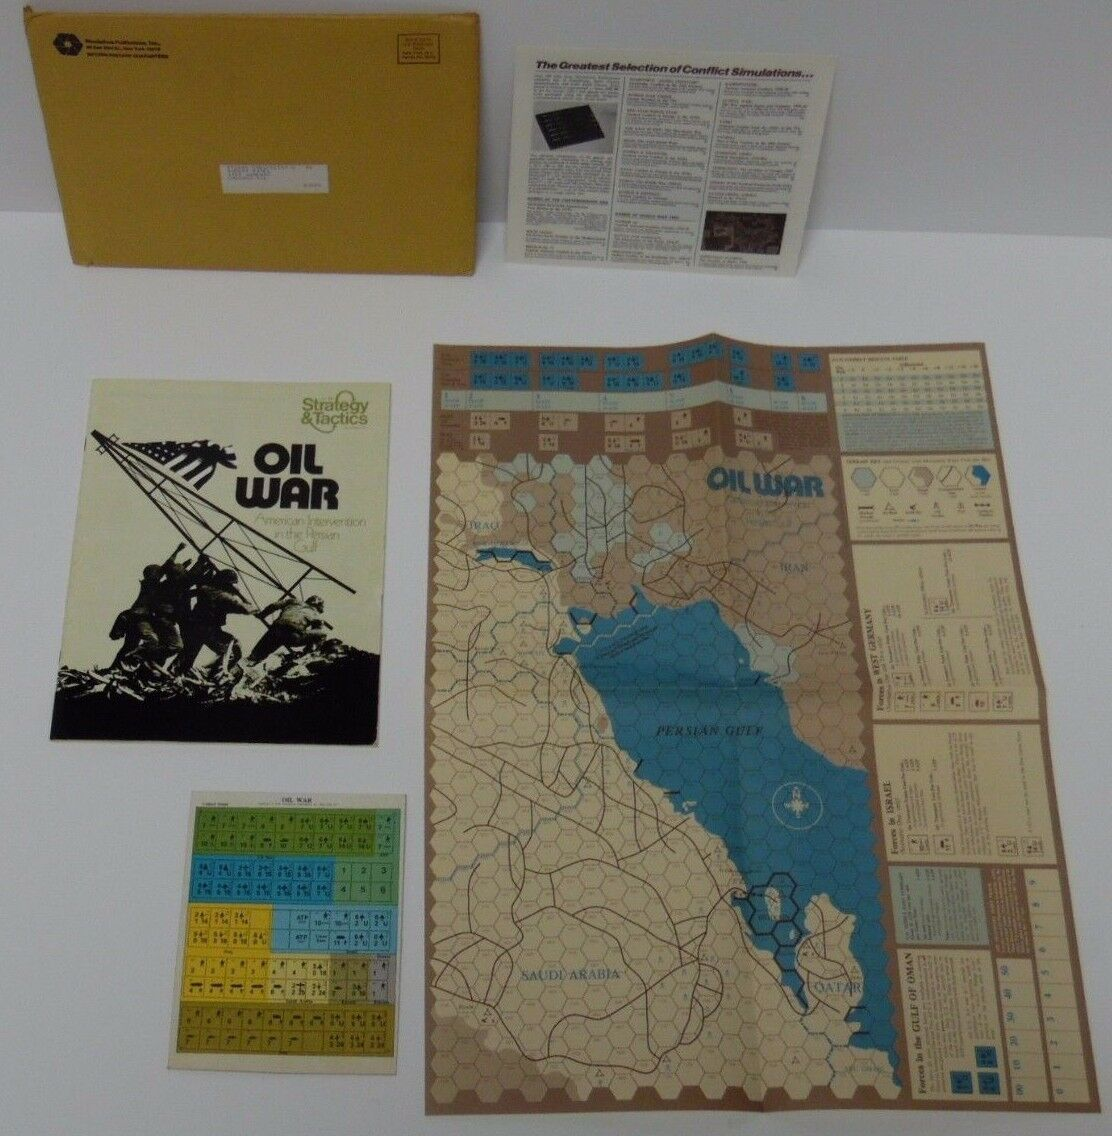 New Vintage 1975 OIL WAR USA US MIDDLE EAST PERSIAN GULF SPI Military Board Game